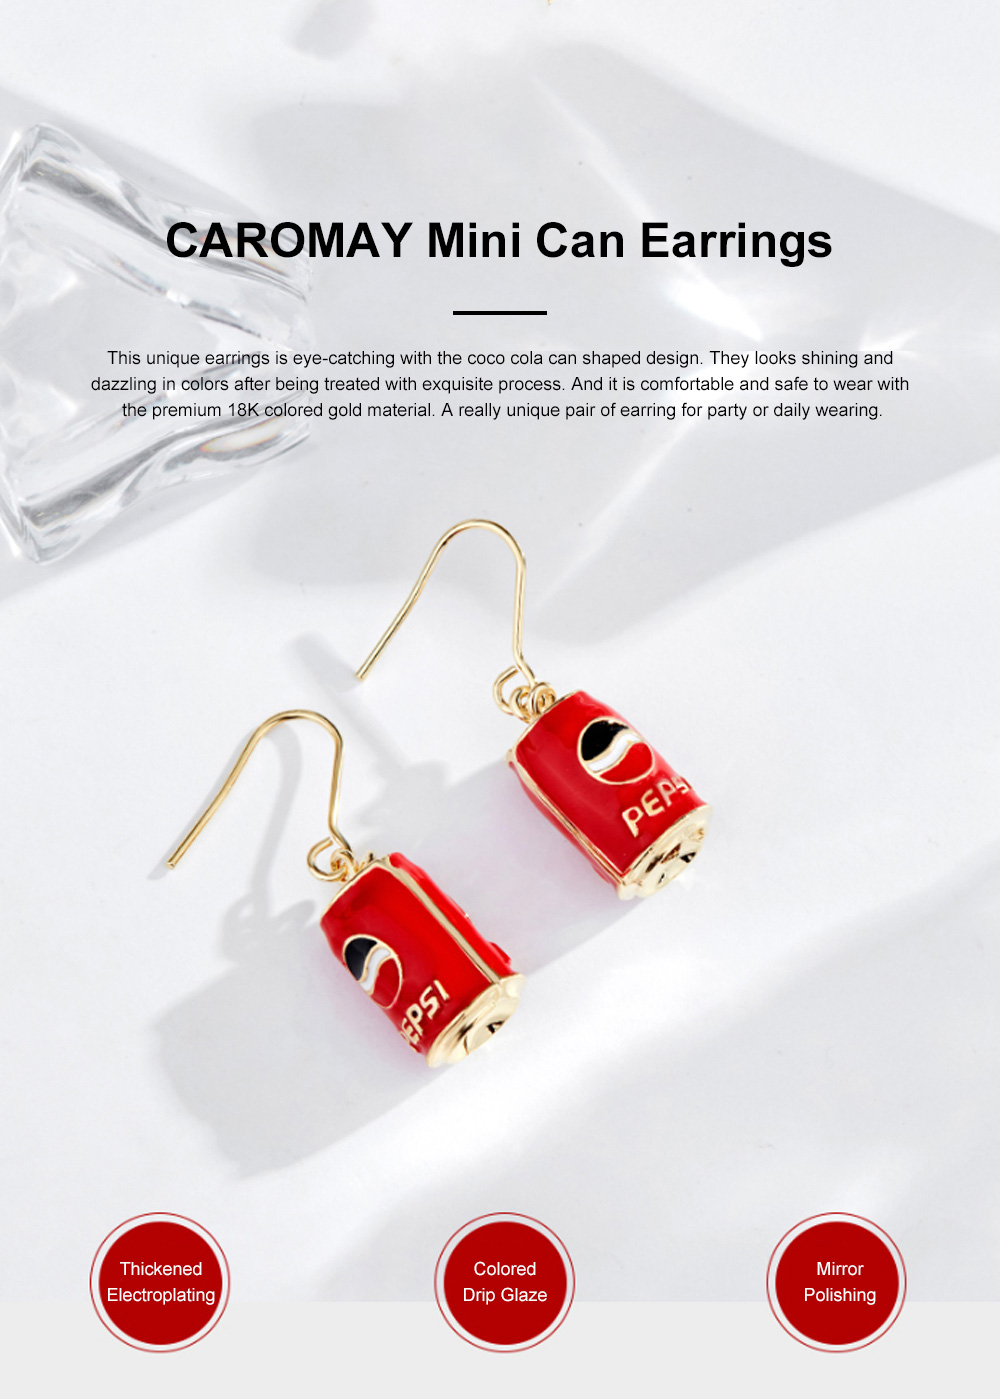 CAROMAY Cola Can Earrings 18K Colored Gold Can Ear Jewelry for Girls Creative Can Accessory for Party Daily Wearing Valentine's Day Present 0